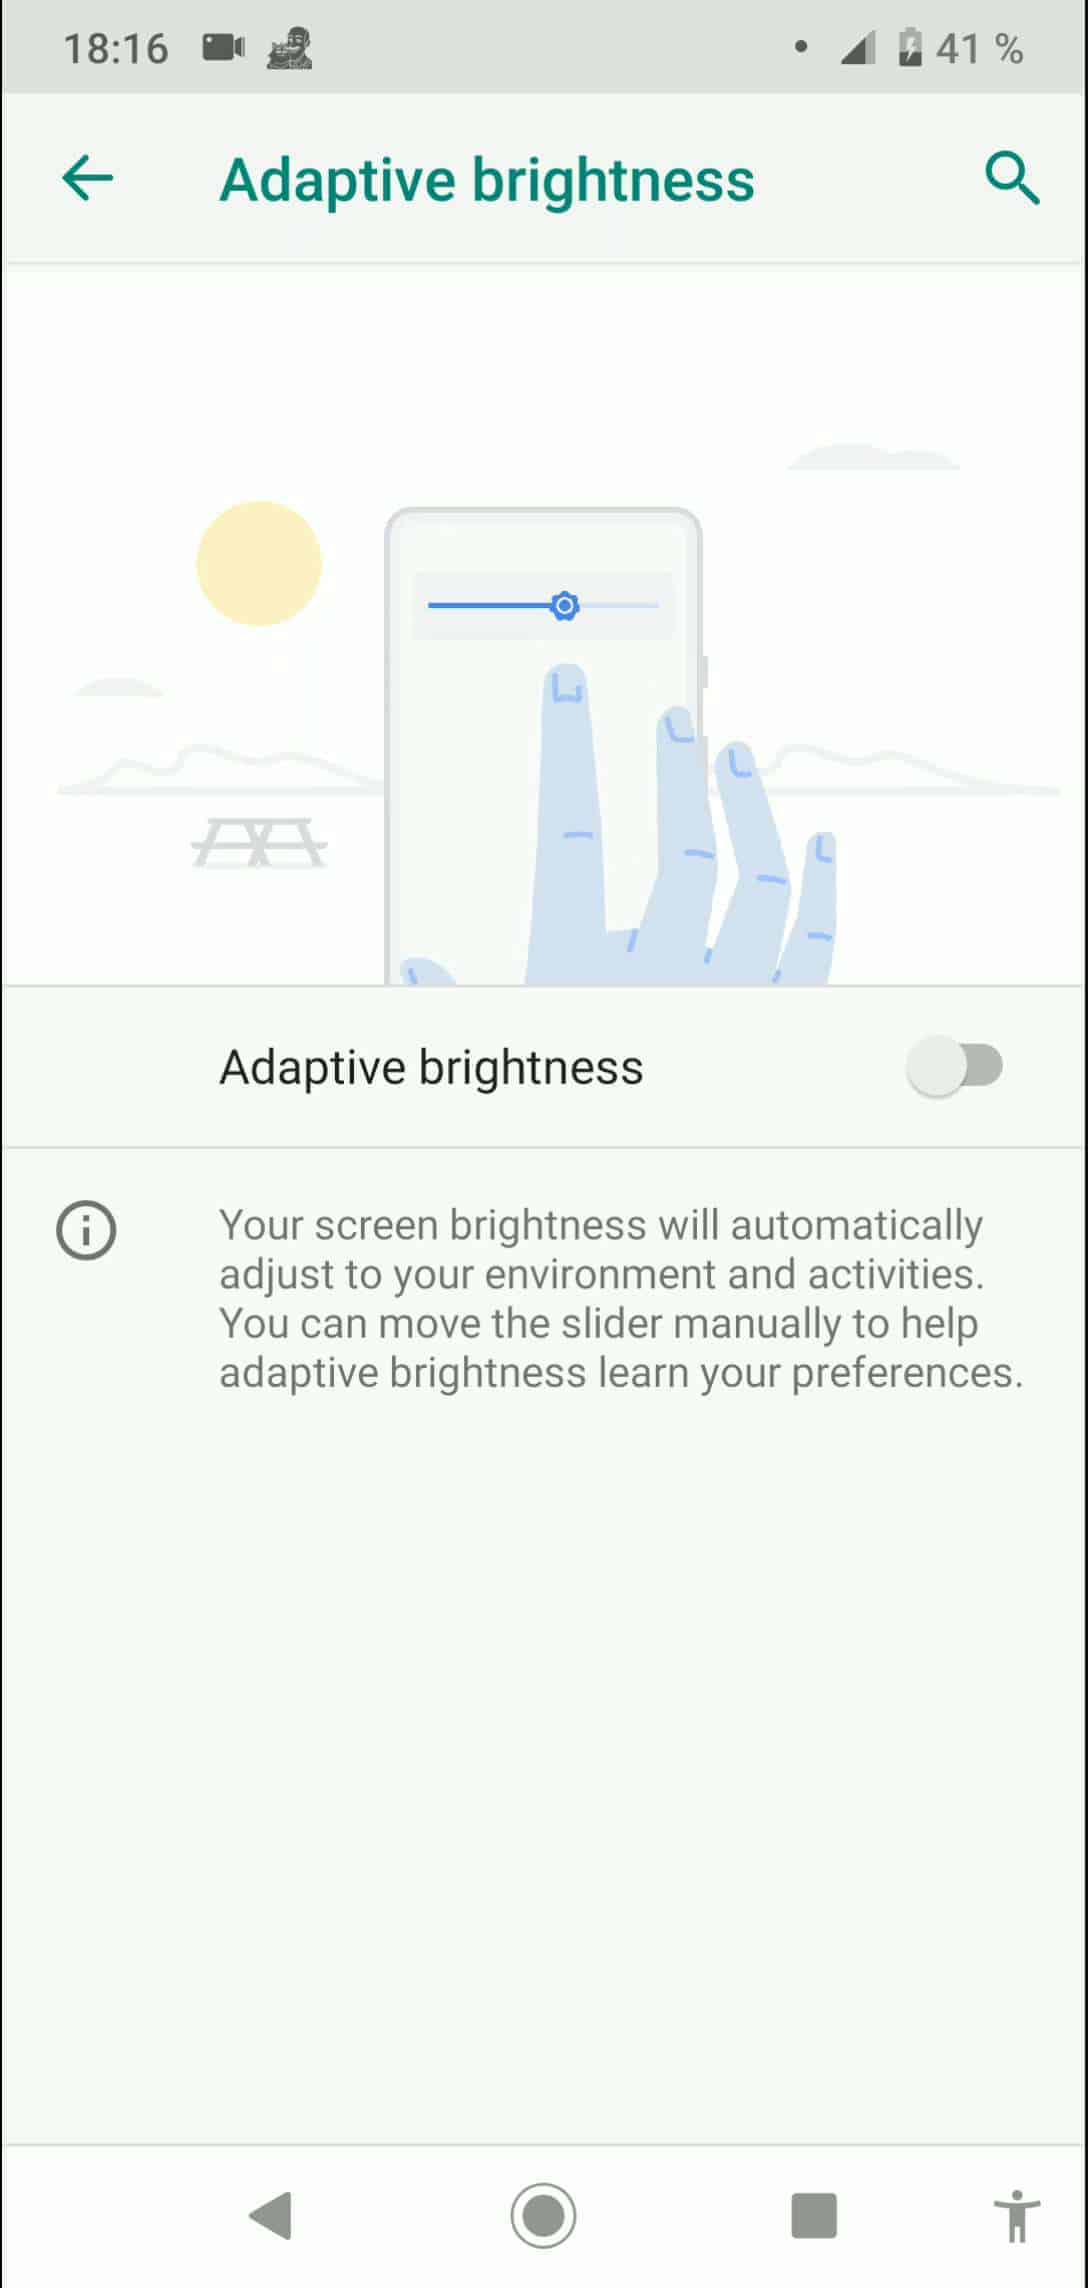 Step 4: Activate or deactivate Adaptive brightness